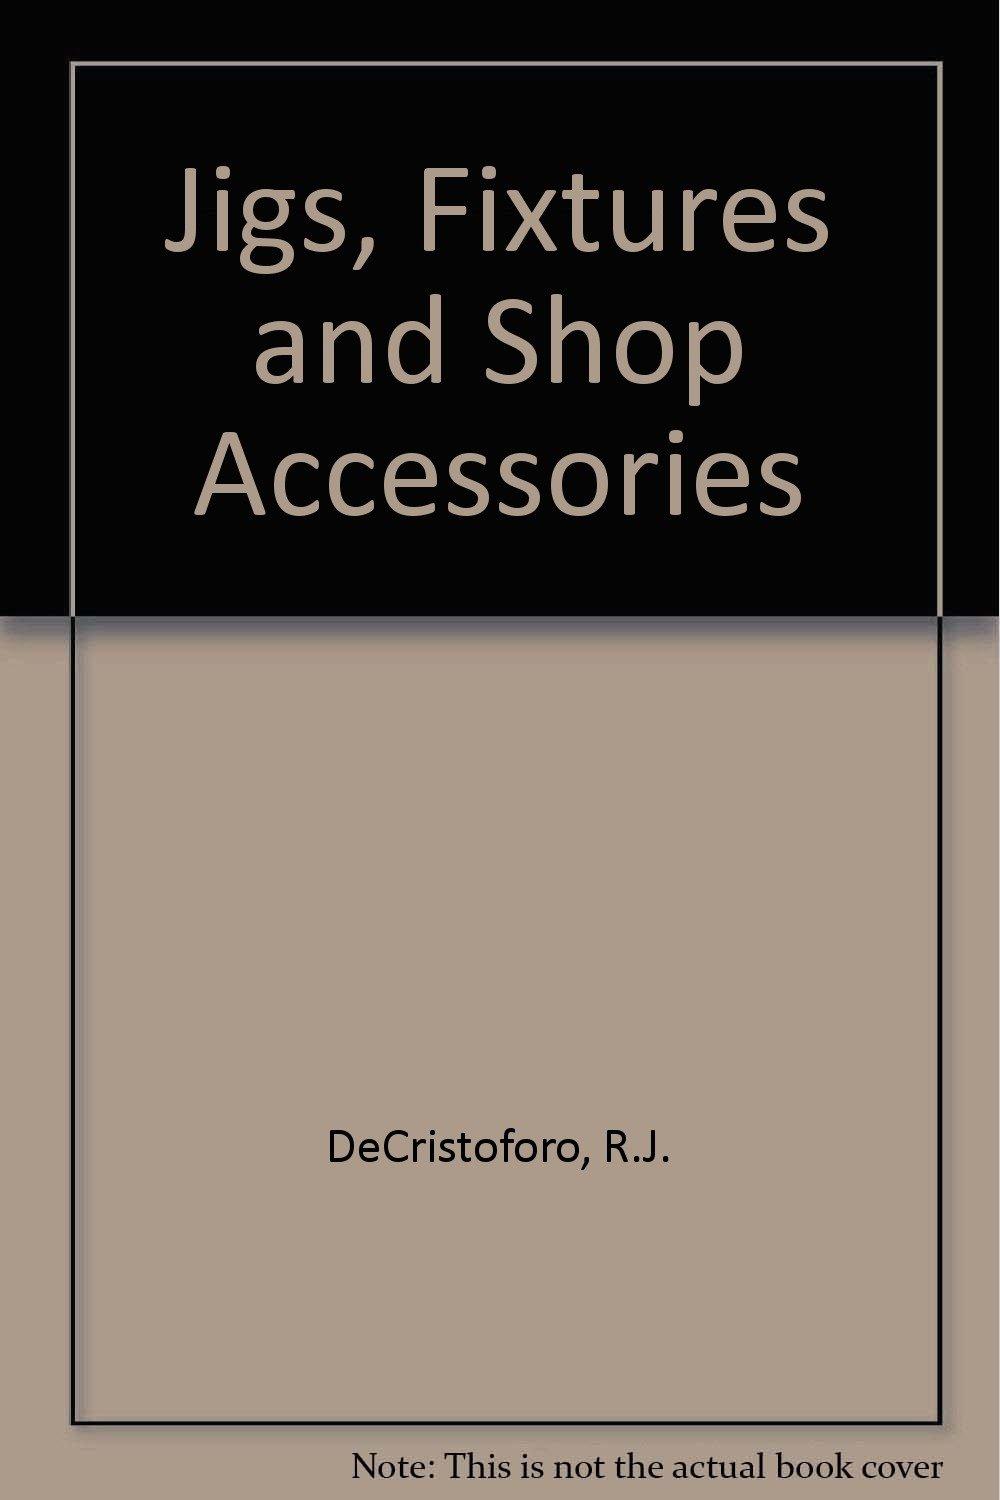 Jigs, Fixtures, and Shop Accessories